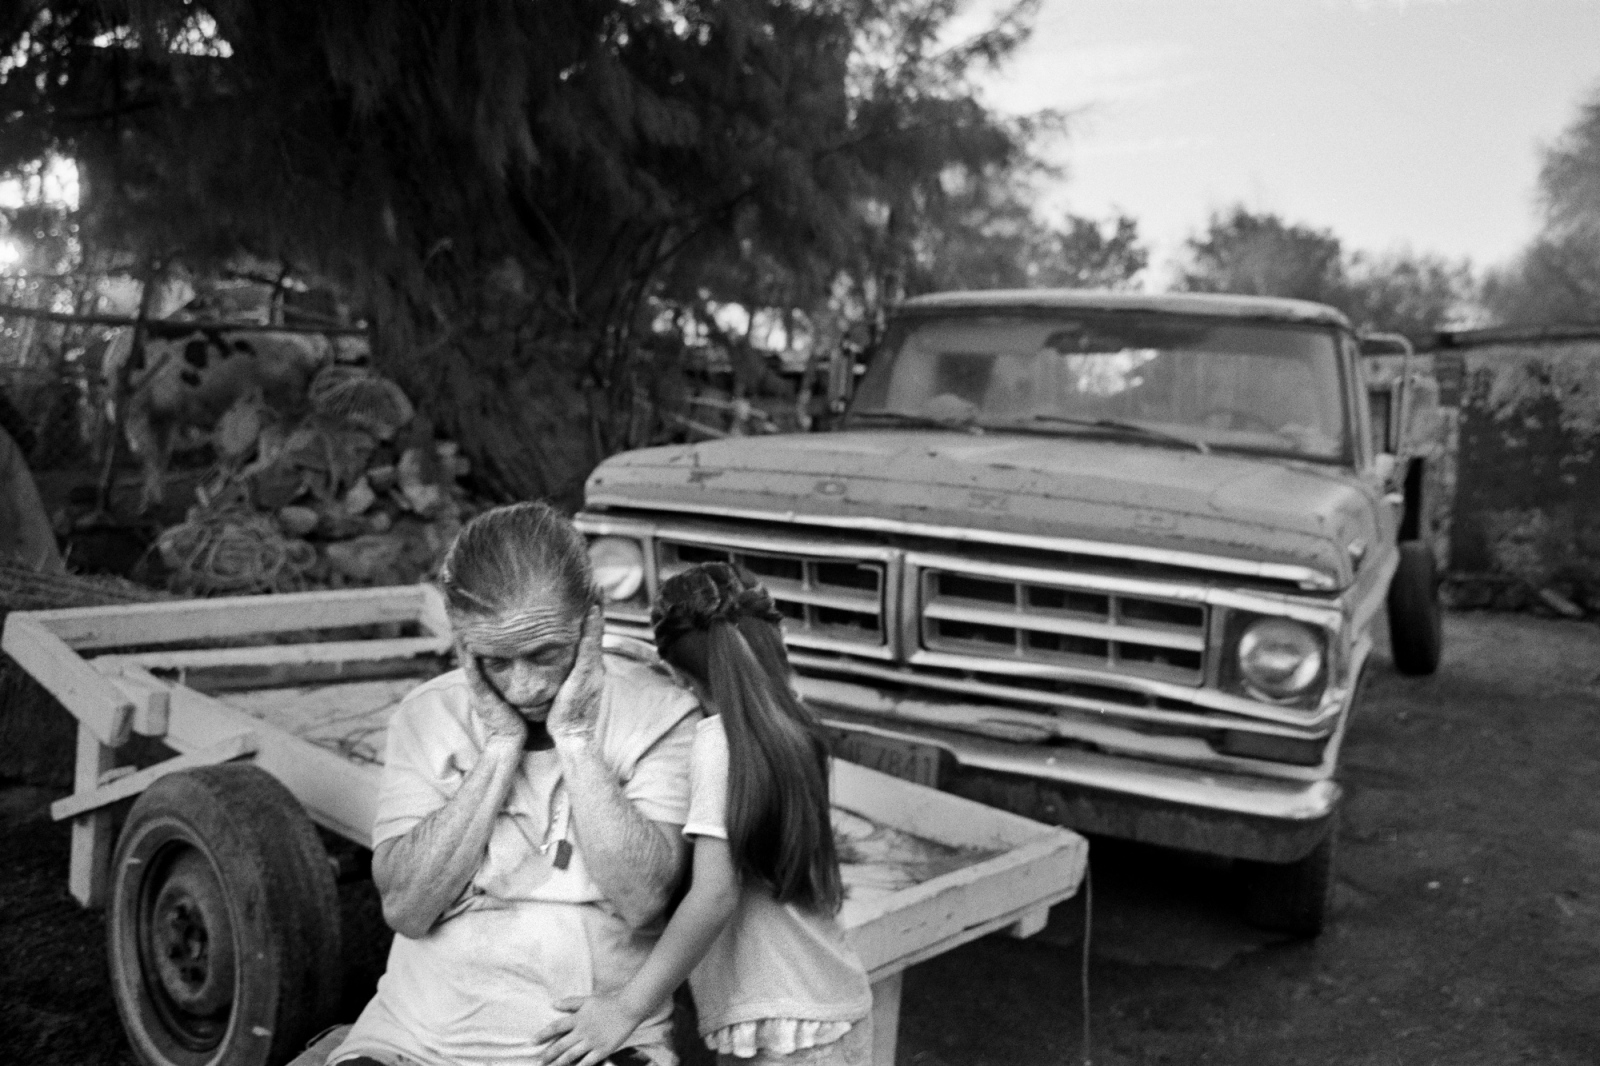 Sitting on her family's failing farm, a grandmother is comforted by her daughter in Sonora, Mexico. The farm, with its thin cows and now arid land, sits only yards from where the Colorado River once provided life.